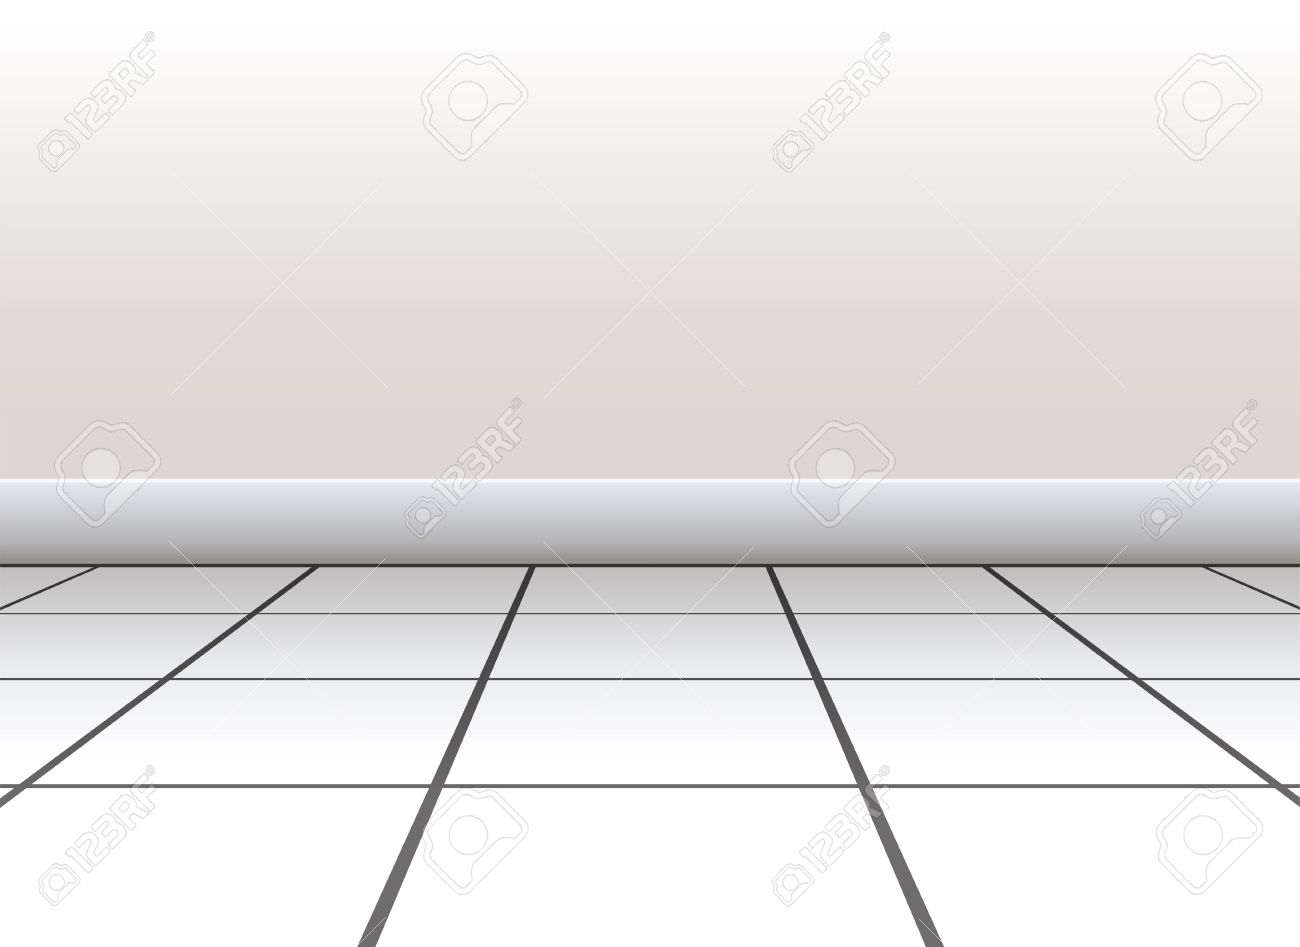 Tiled Floor On A White Background Royalty Free Cliparts, Vectors ...